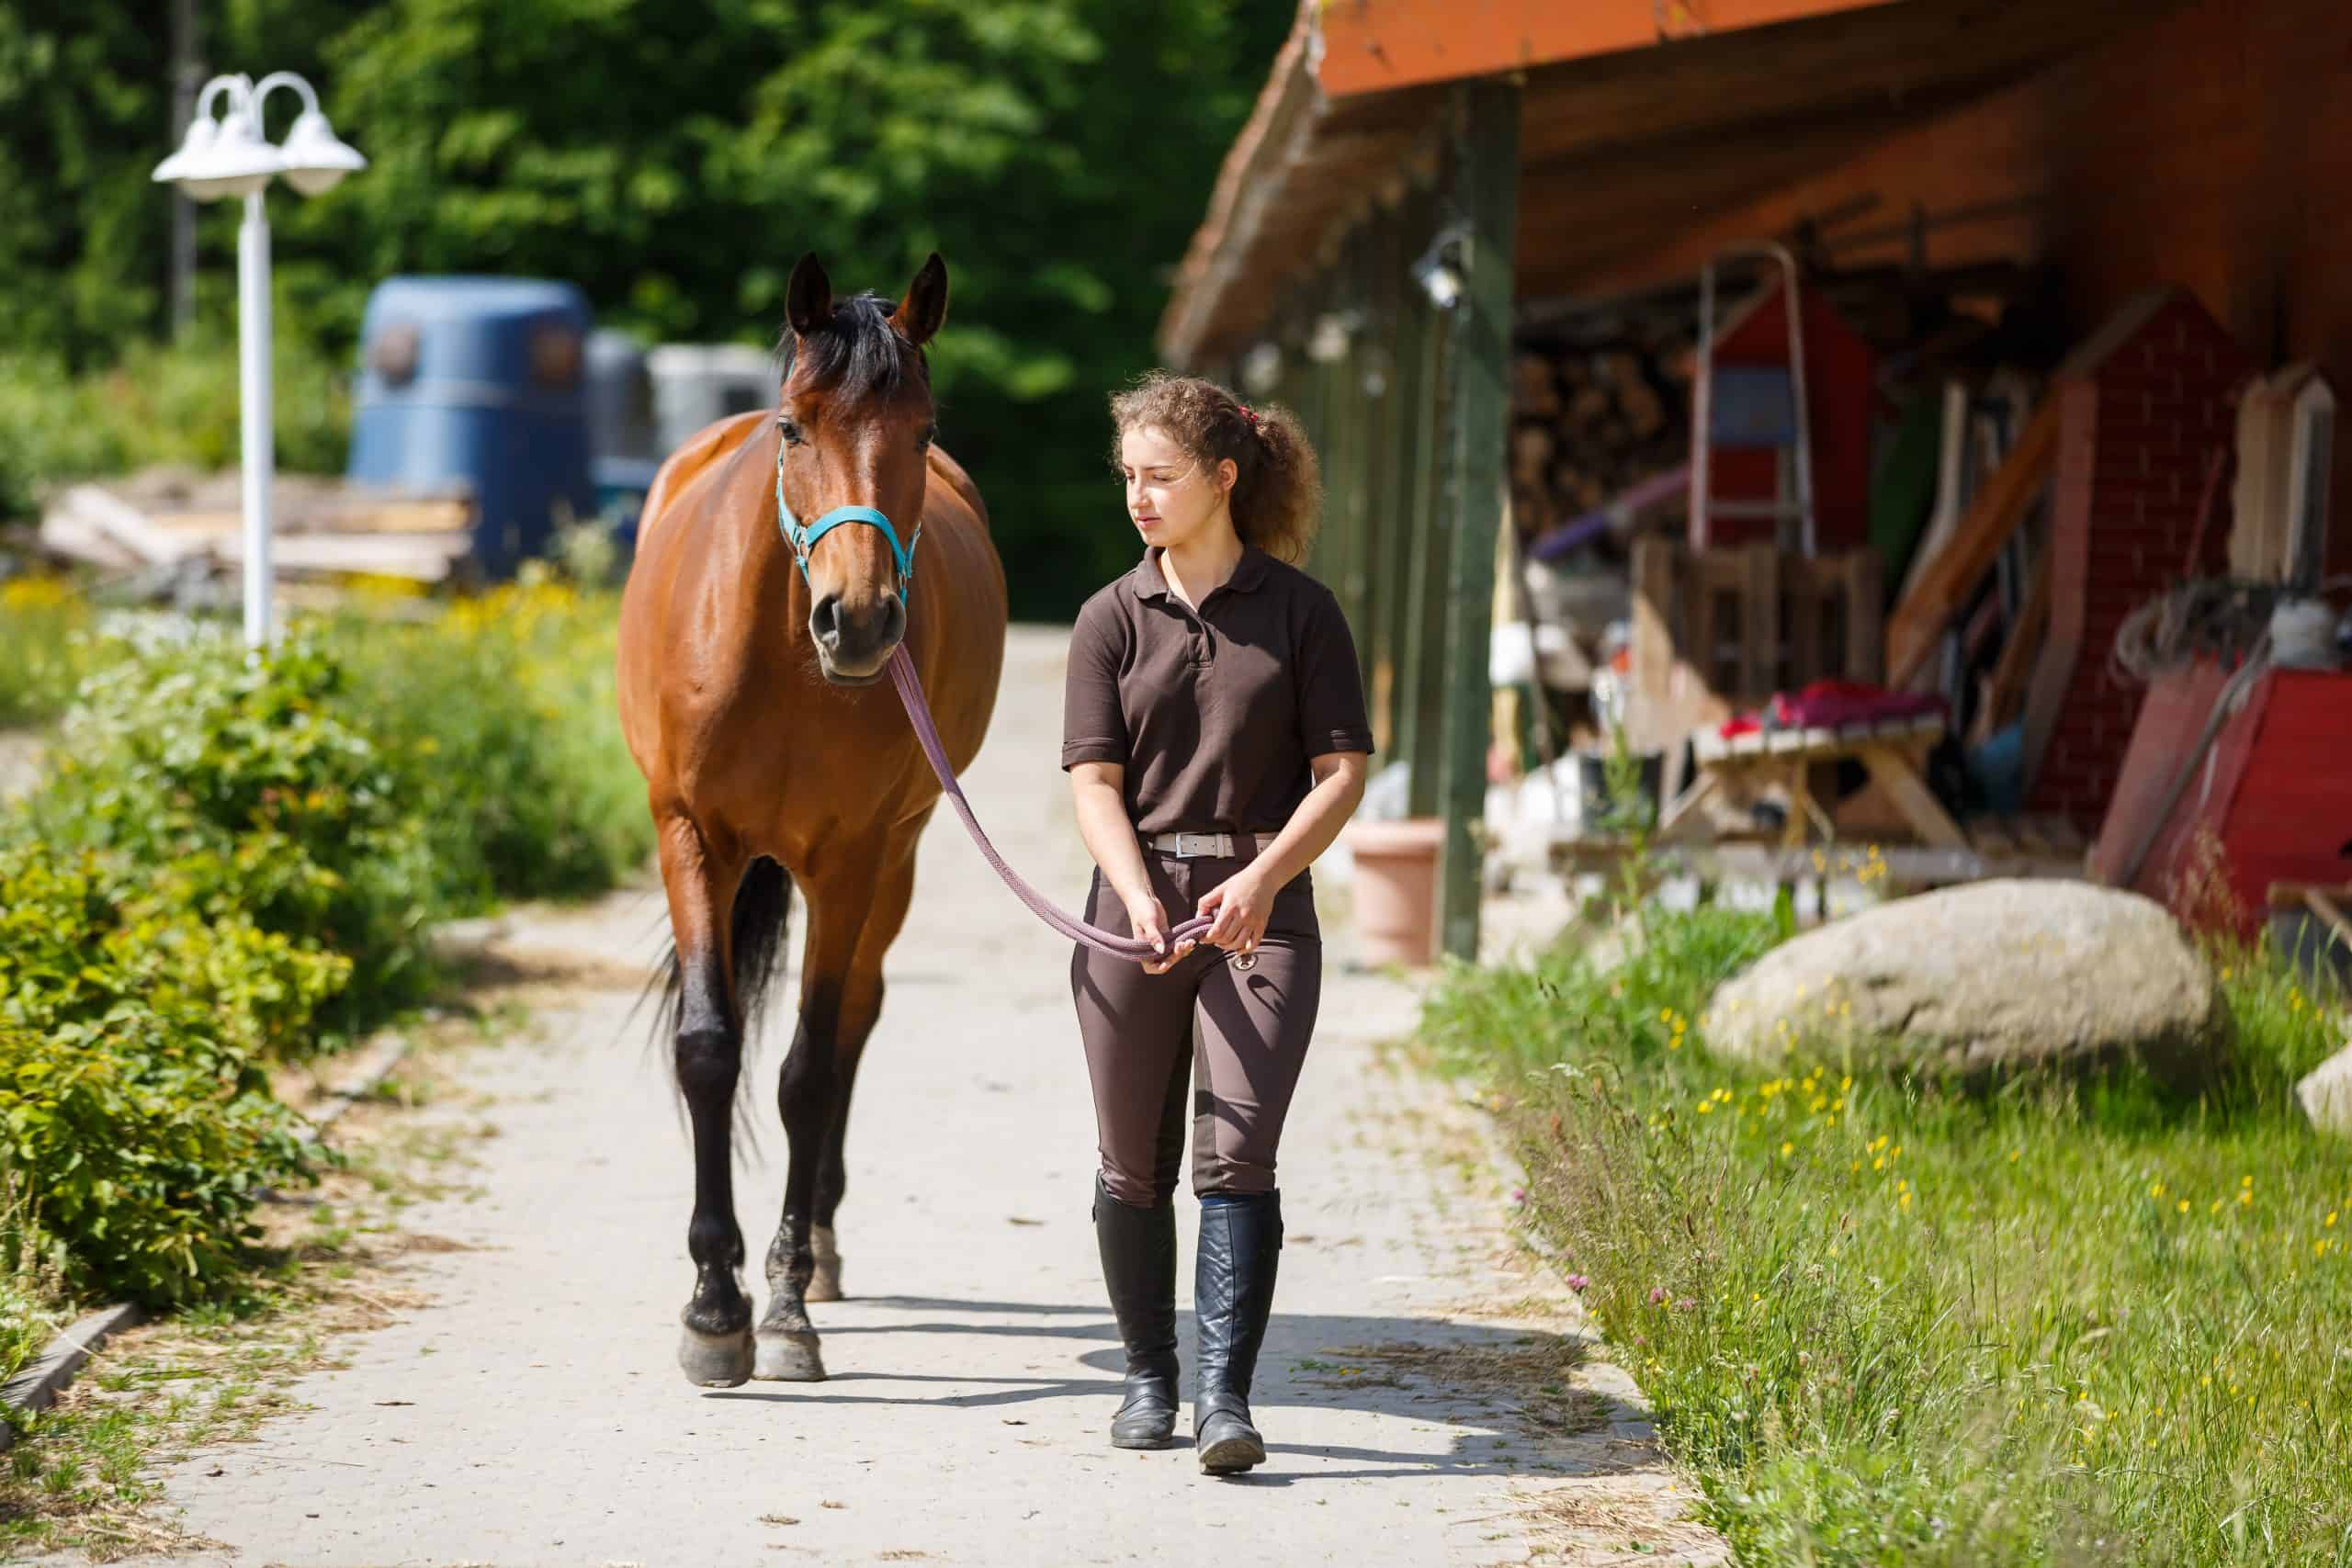 Rider with the horse are walking in a stable outdoors